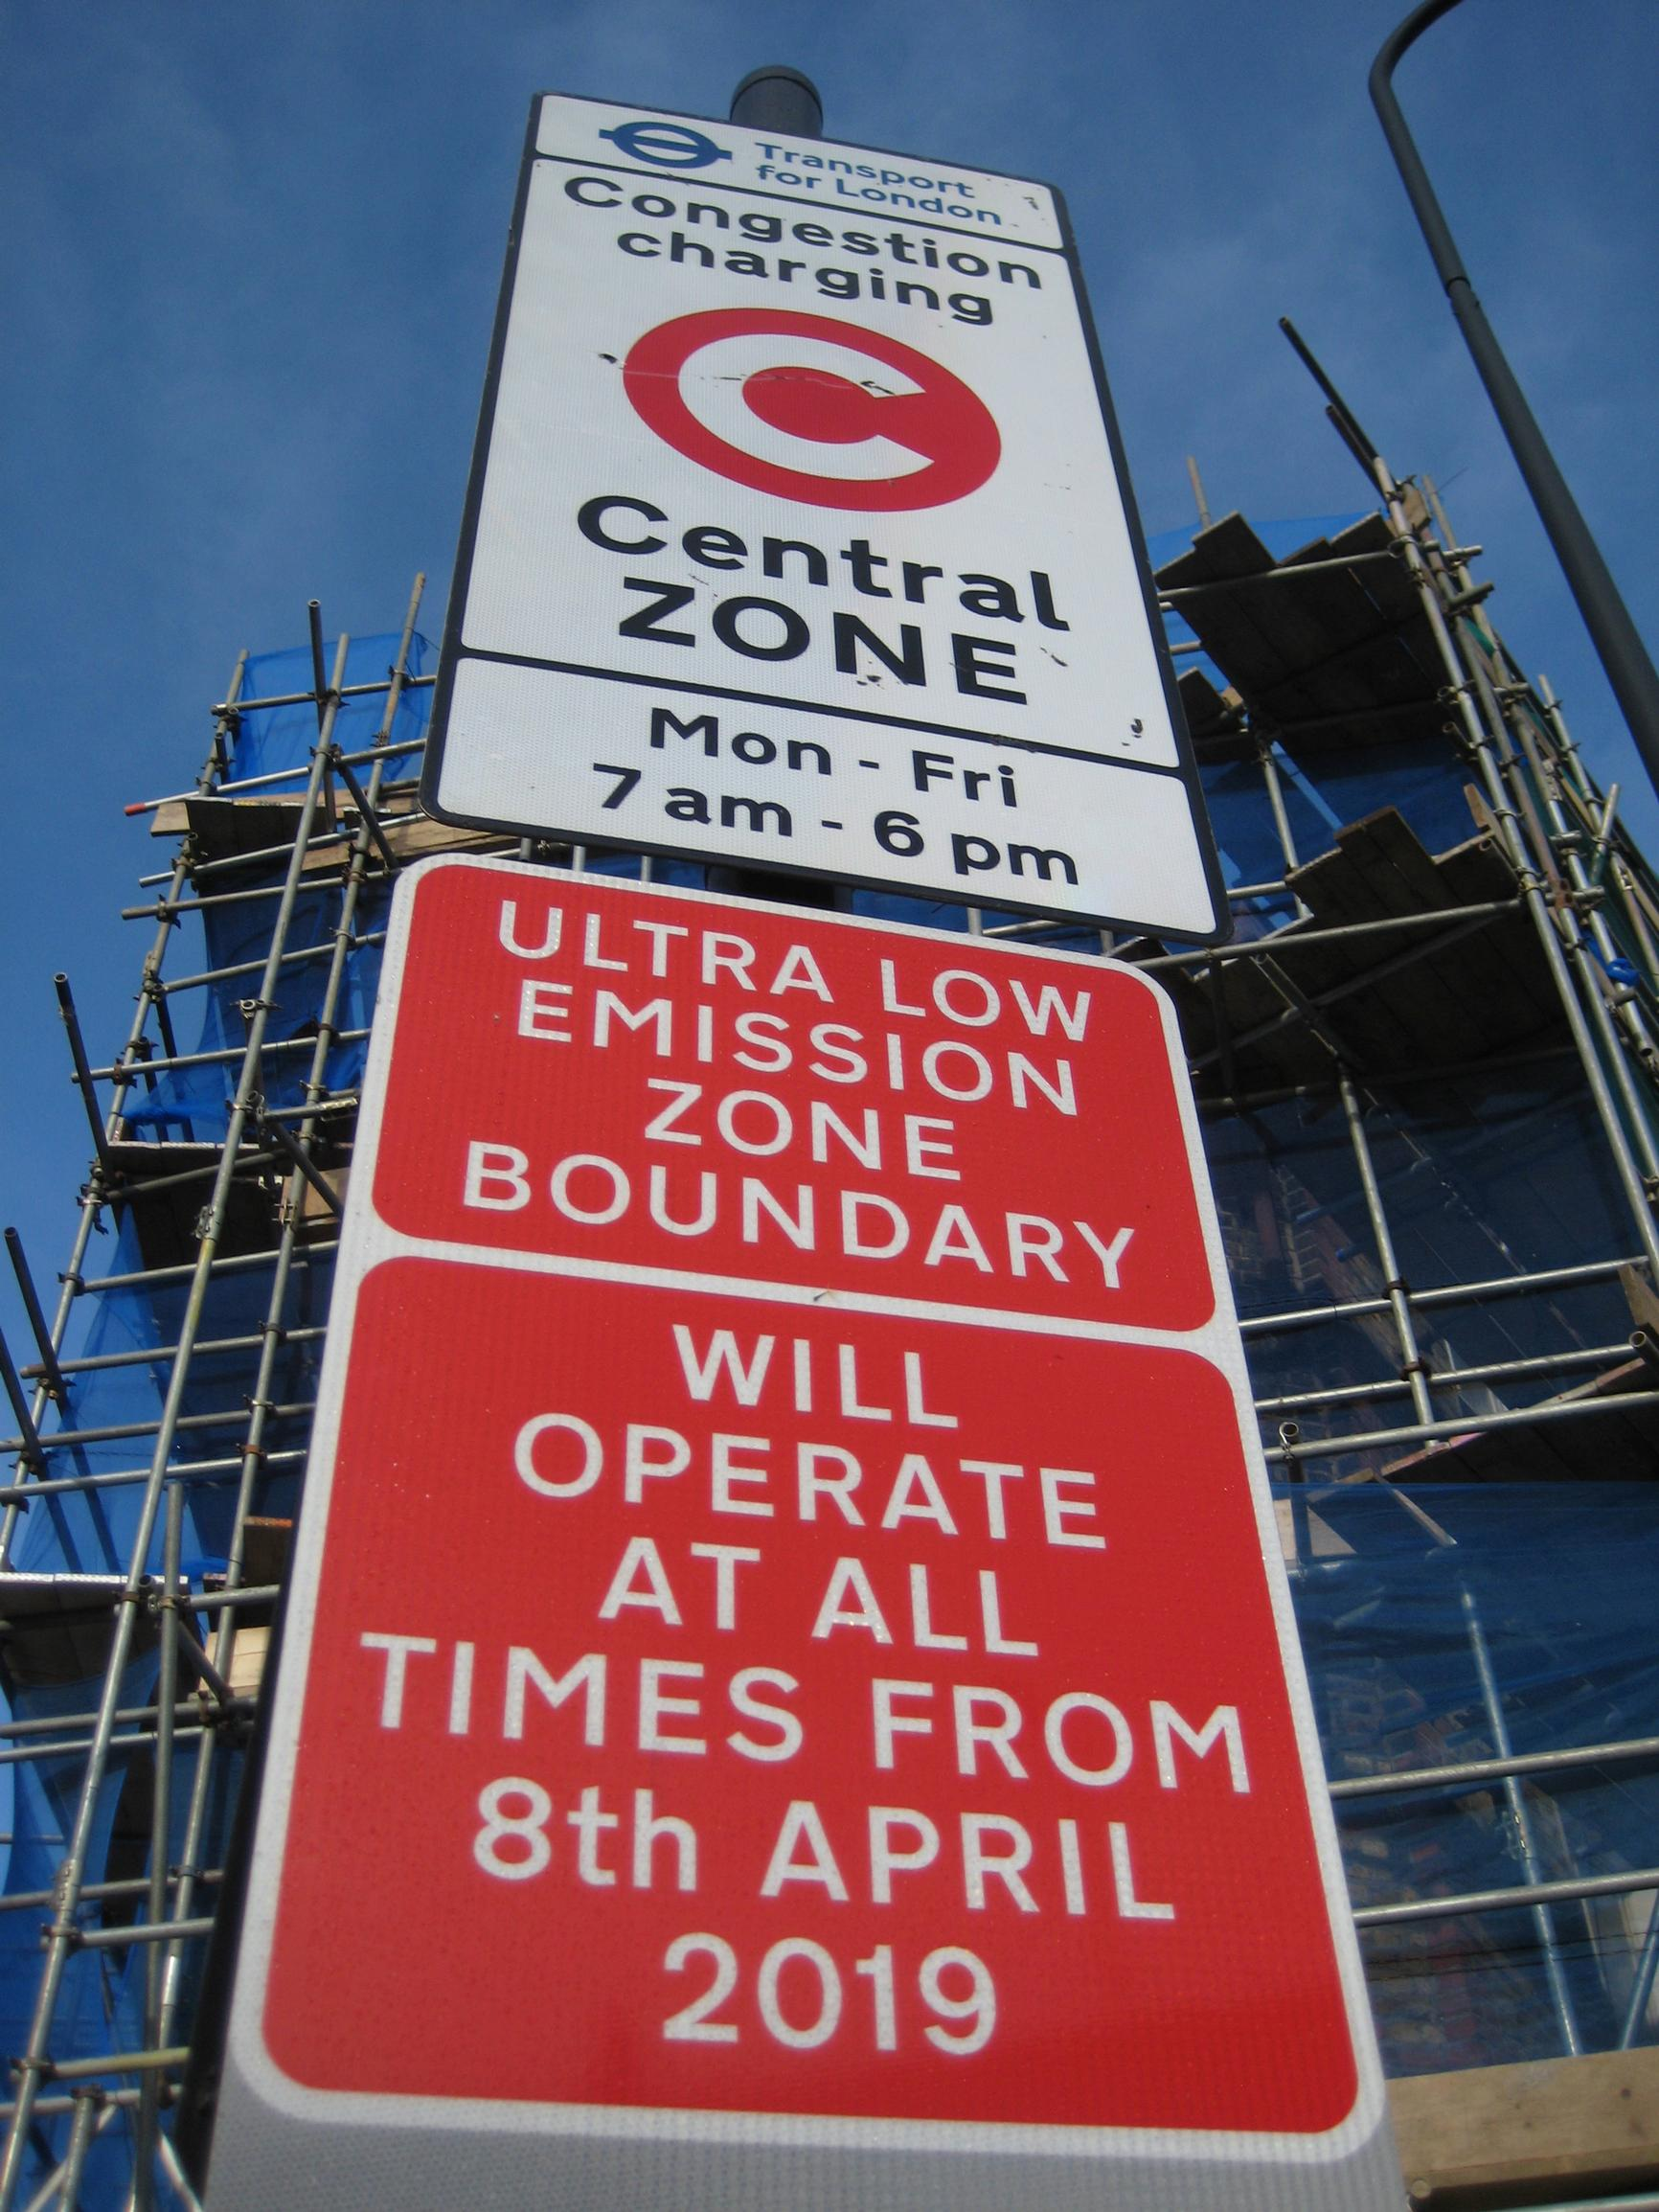 London's ultra-low emission zone launched